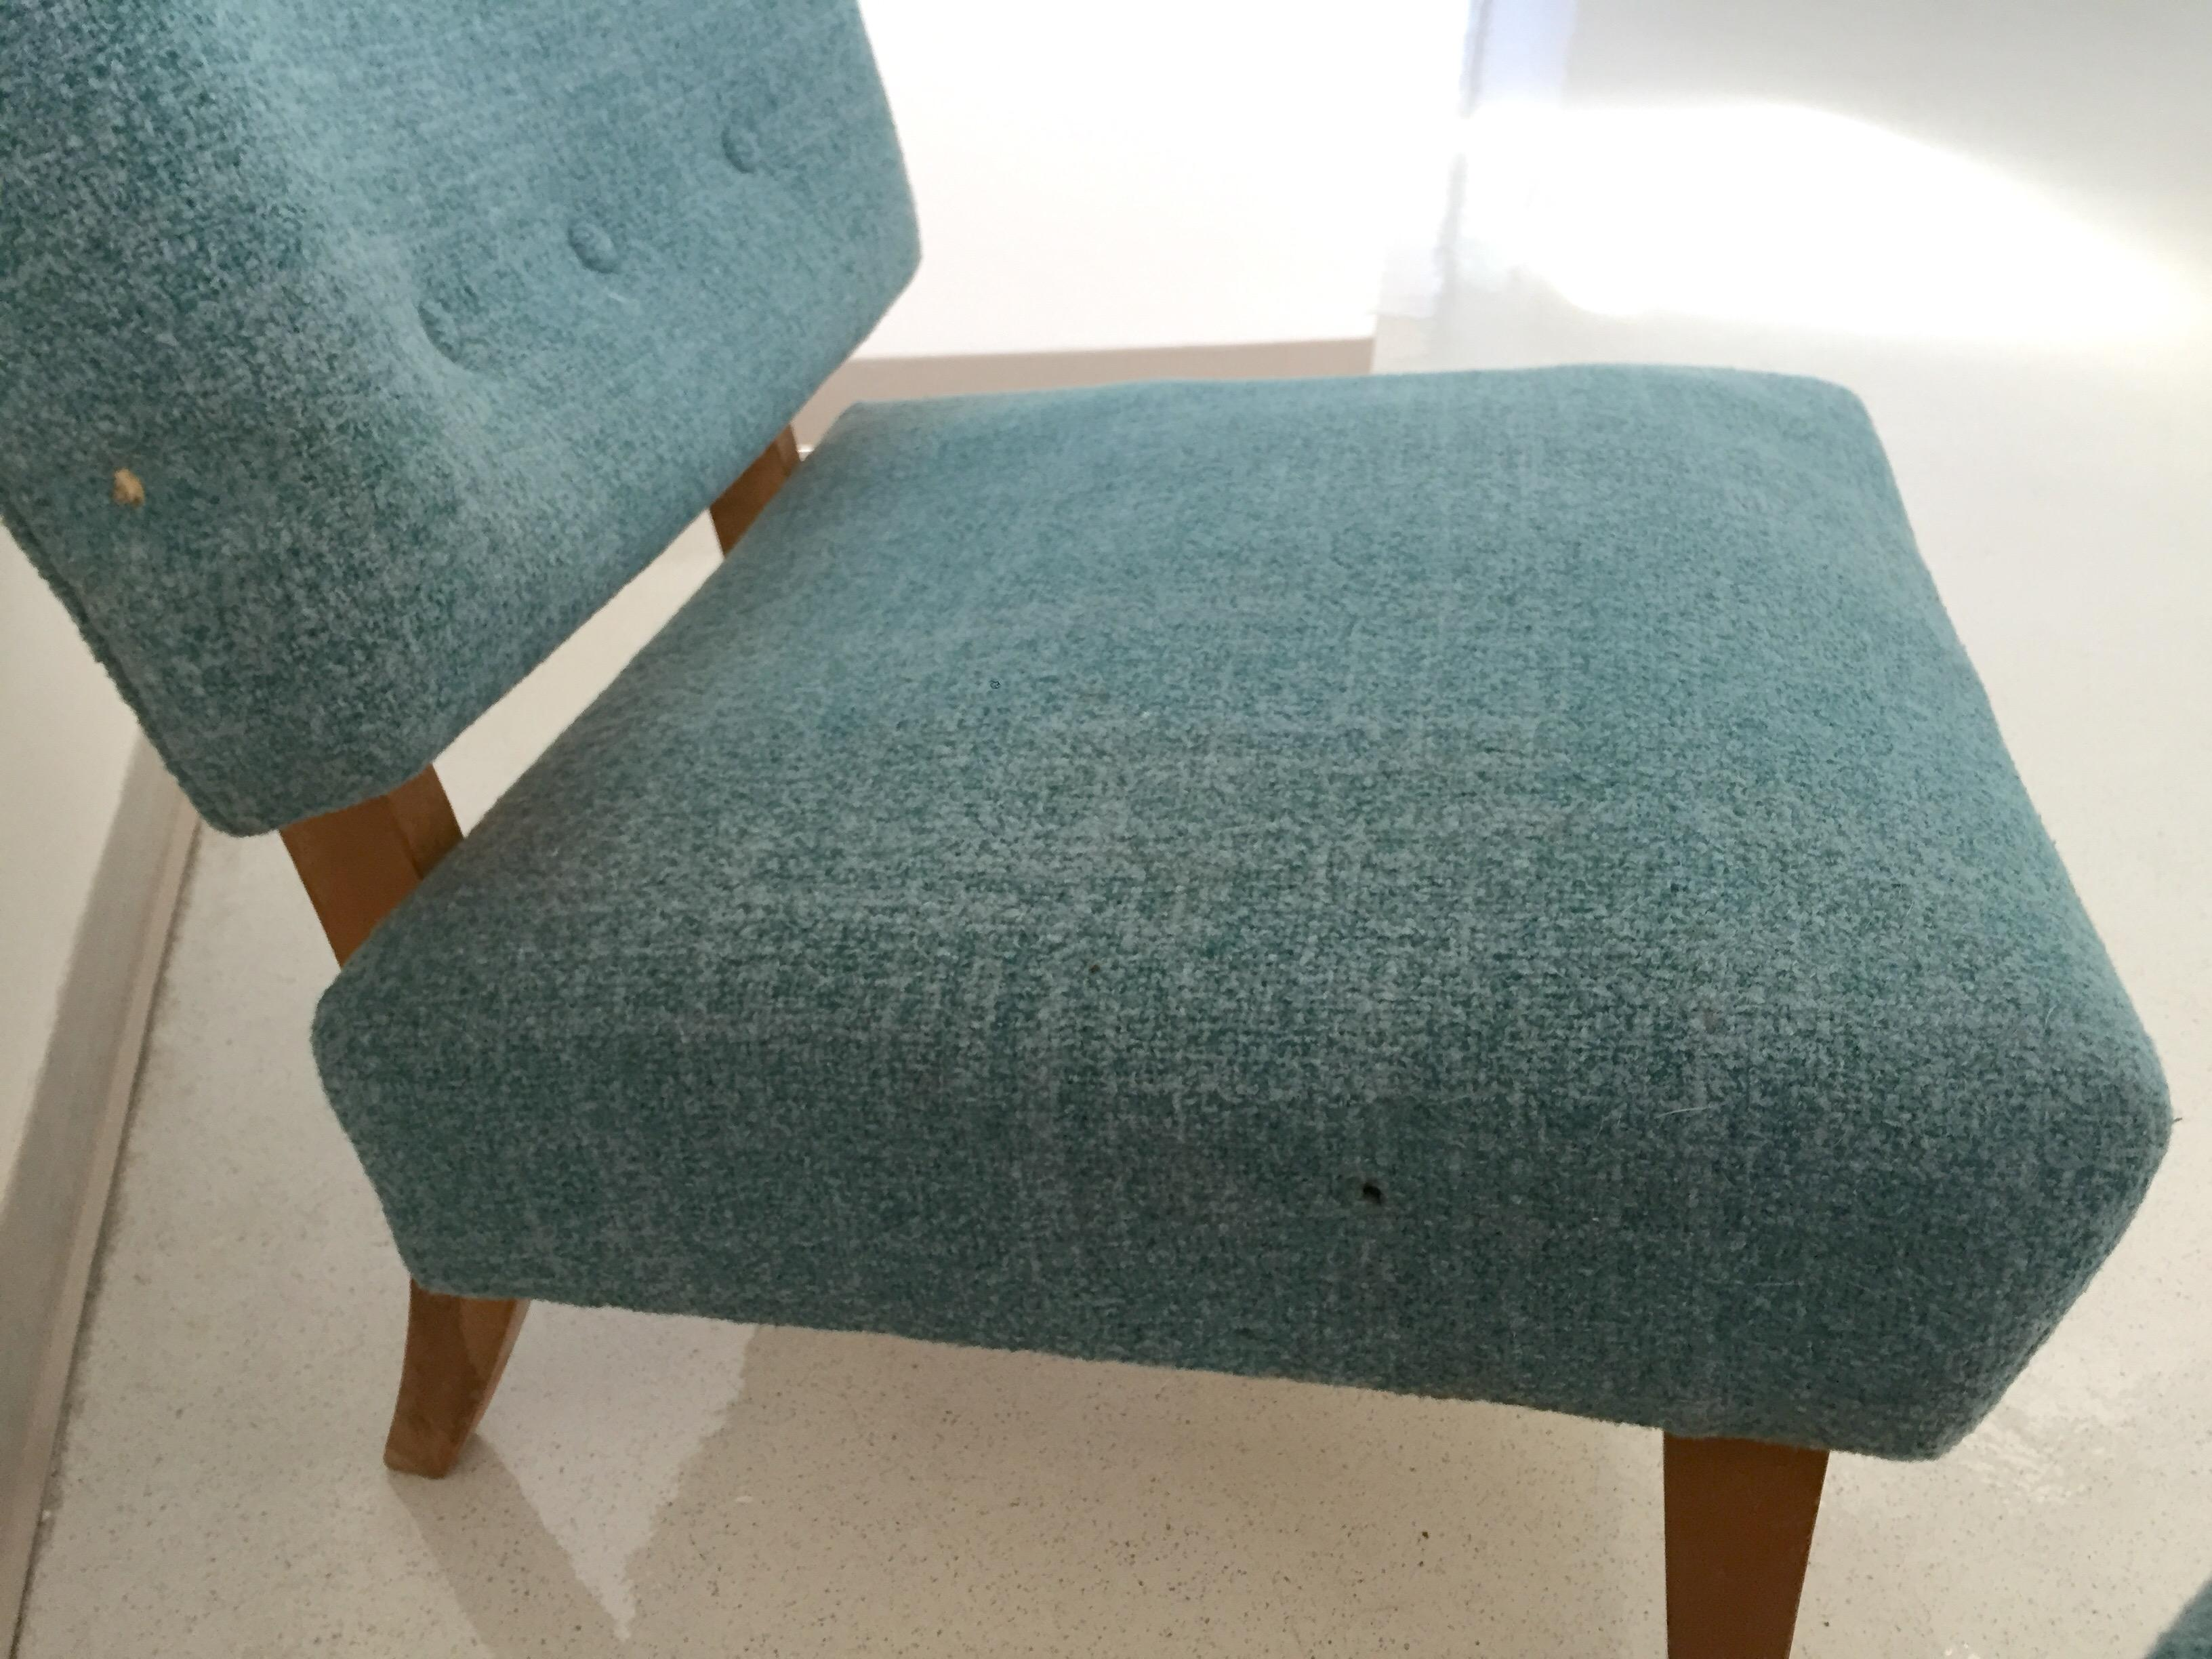 Vintage Kroehler Teal Blue Accent Slipper Chairs - a Pair - Image 4 of 11  sc 1 st  Chairish & Vintage Kroehler Teal Blue Accent Slipper Chairs - a Pair | Chairish